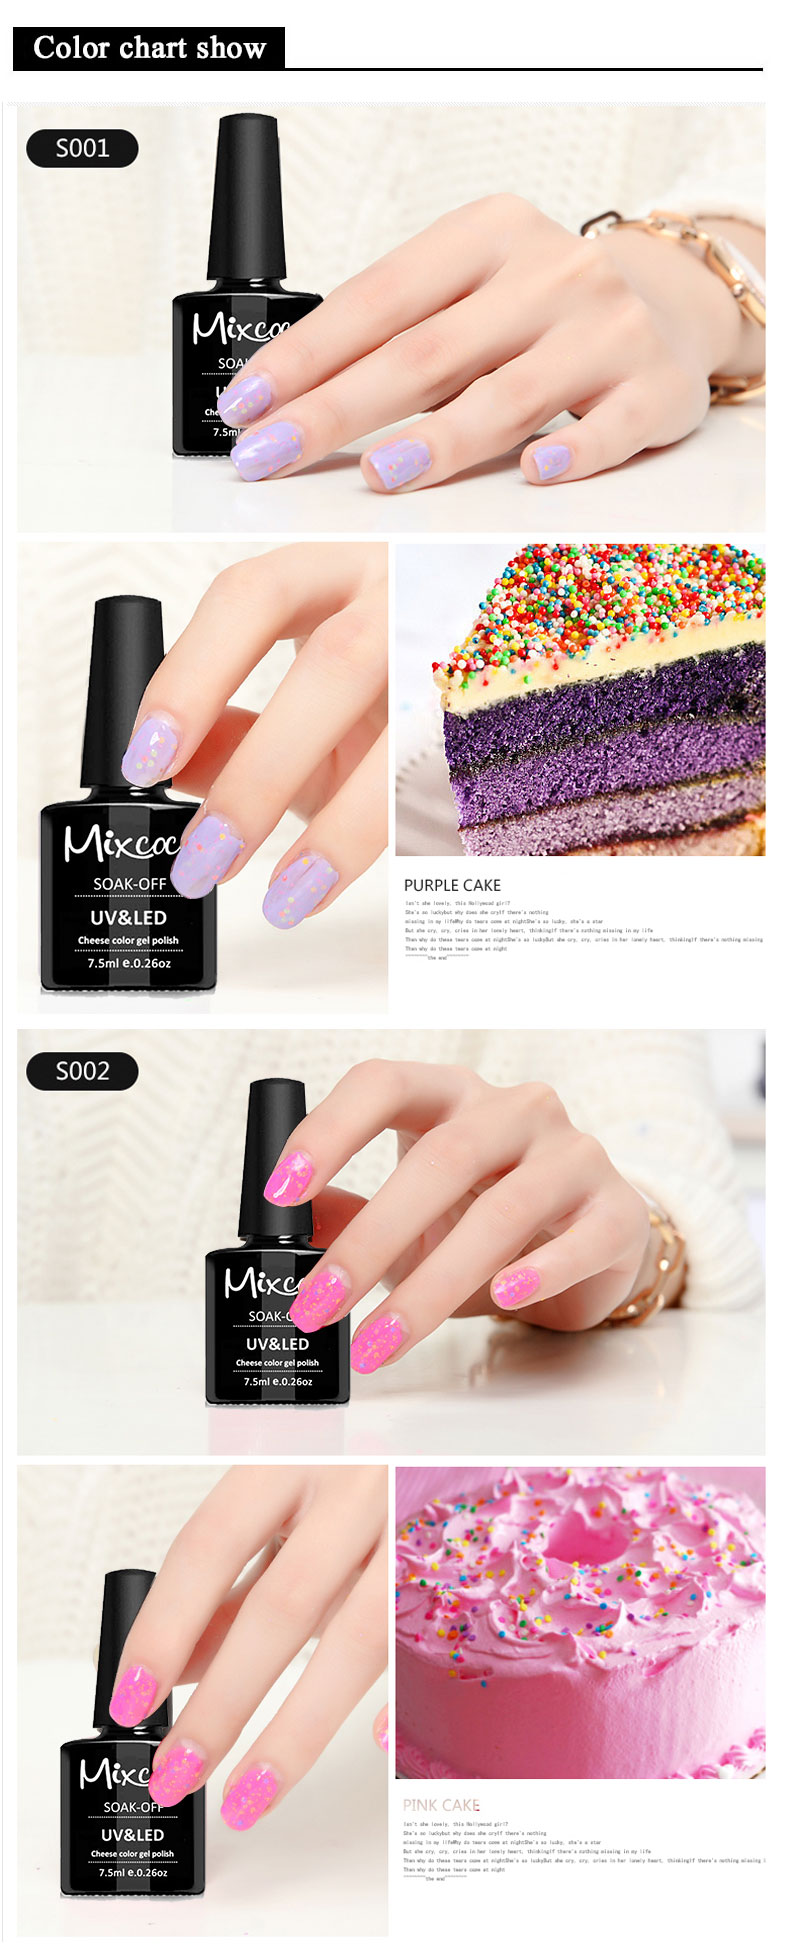 Mixcoco new arrivals special gel nail art long lasting cheese gel healthy uv led gel polish for beauty